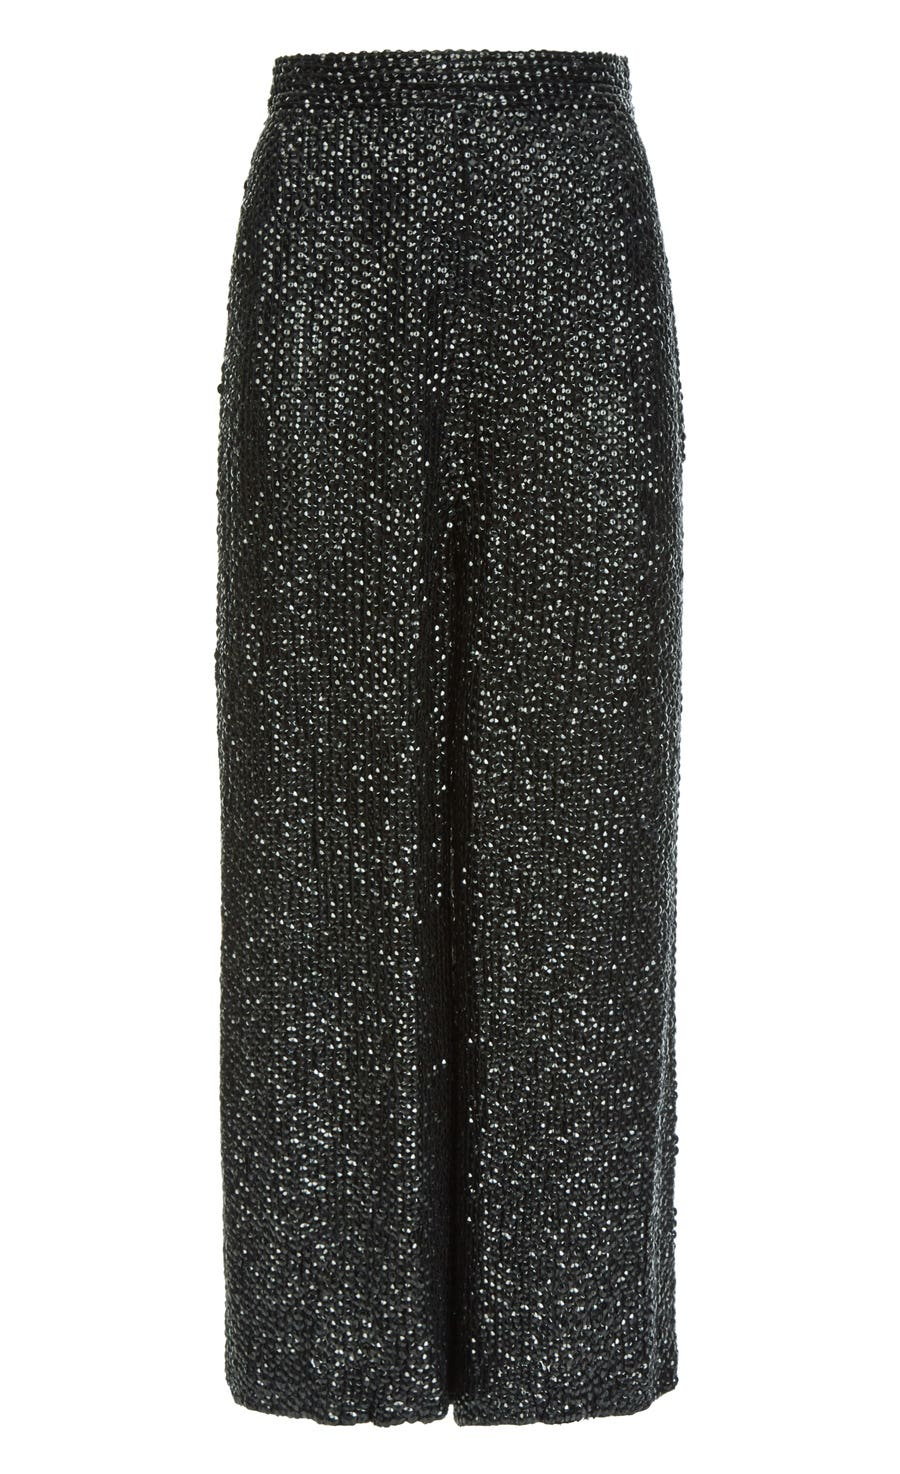 Tiara Trousers, Black